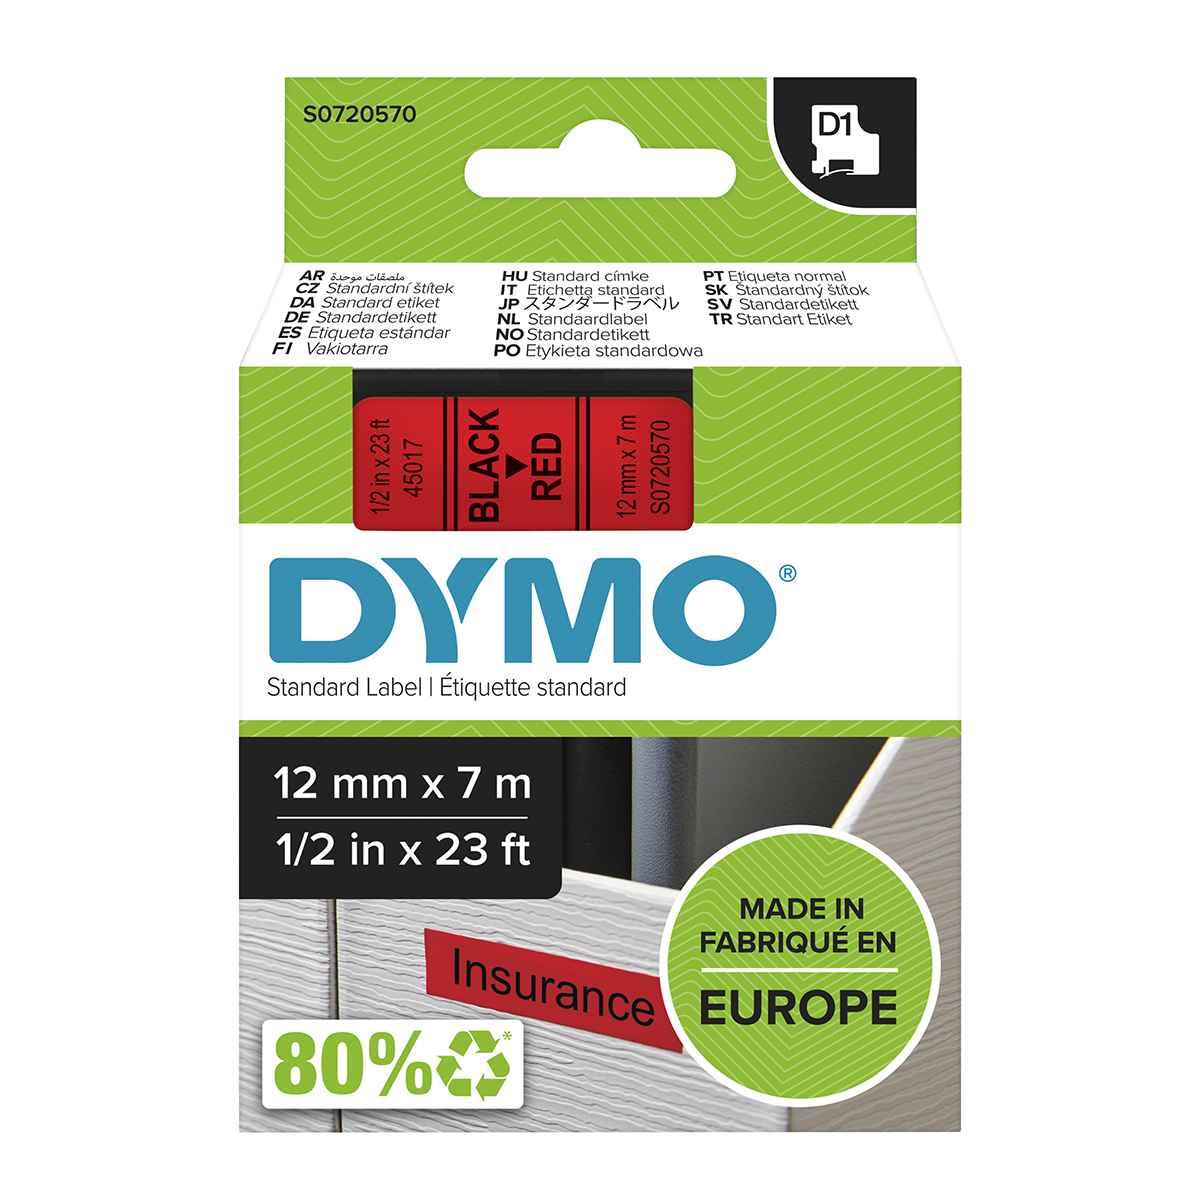 Dymo 45017 D1 12mm x 7m Black on Red Tape